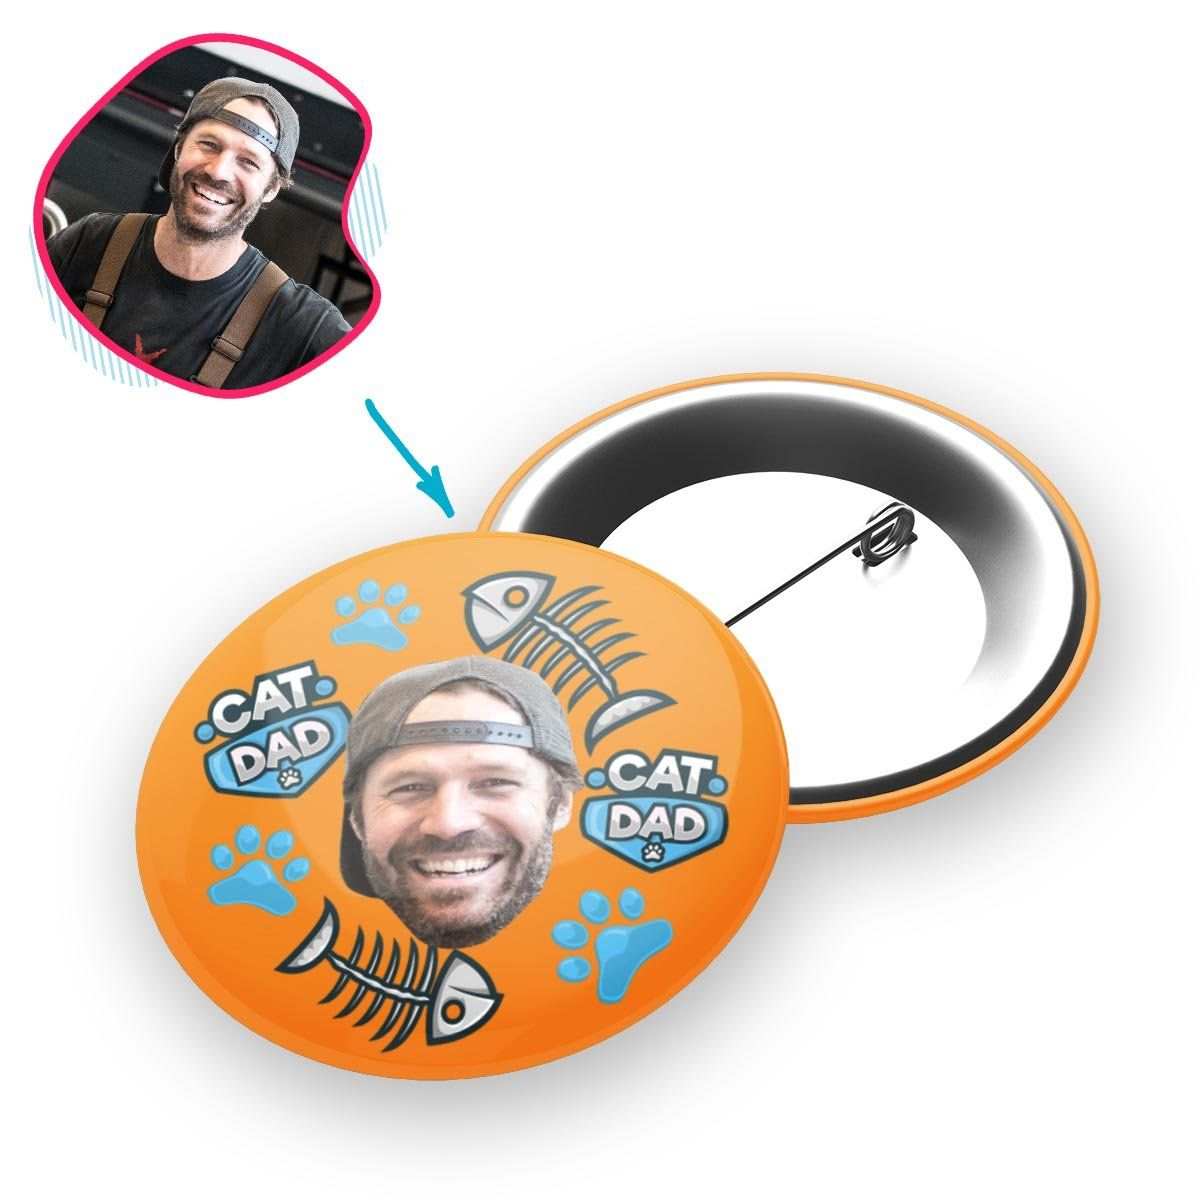 orange Cat Dad pin personalized with photo of face printed on it